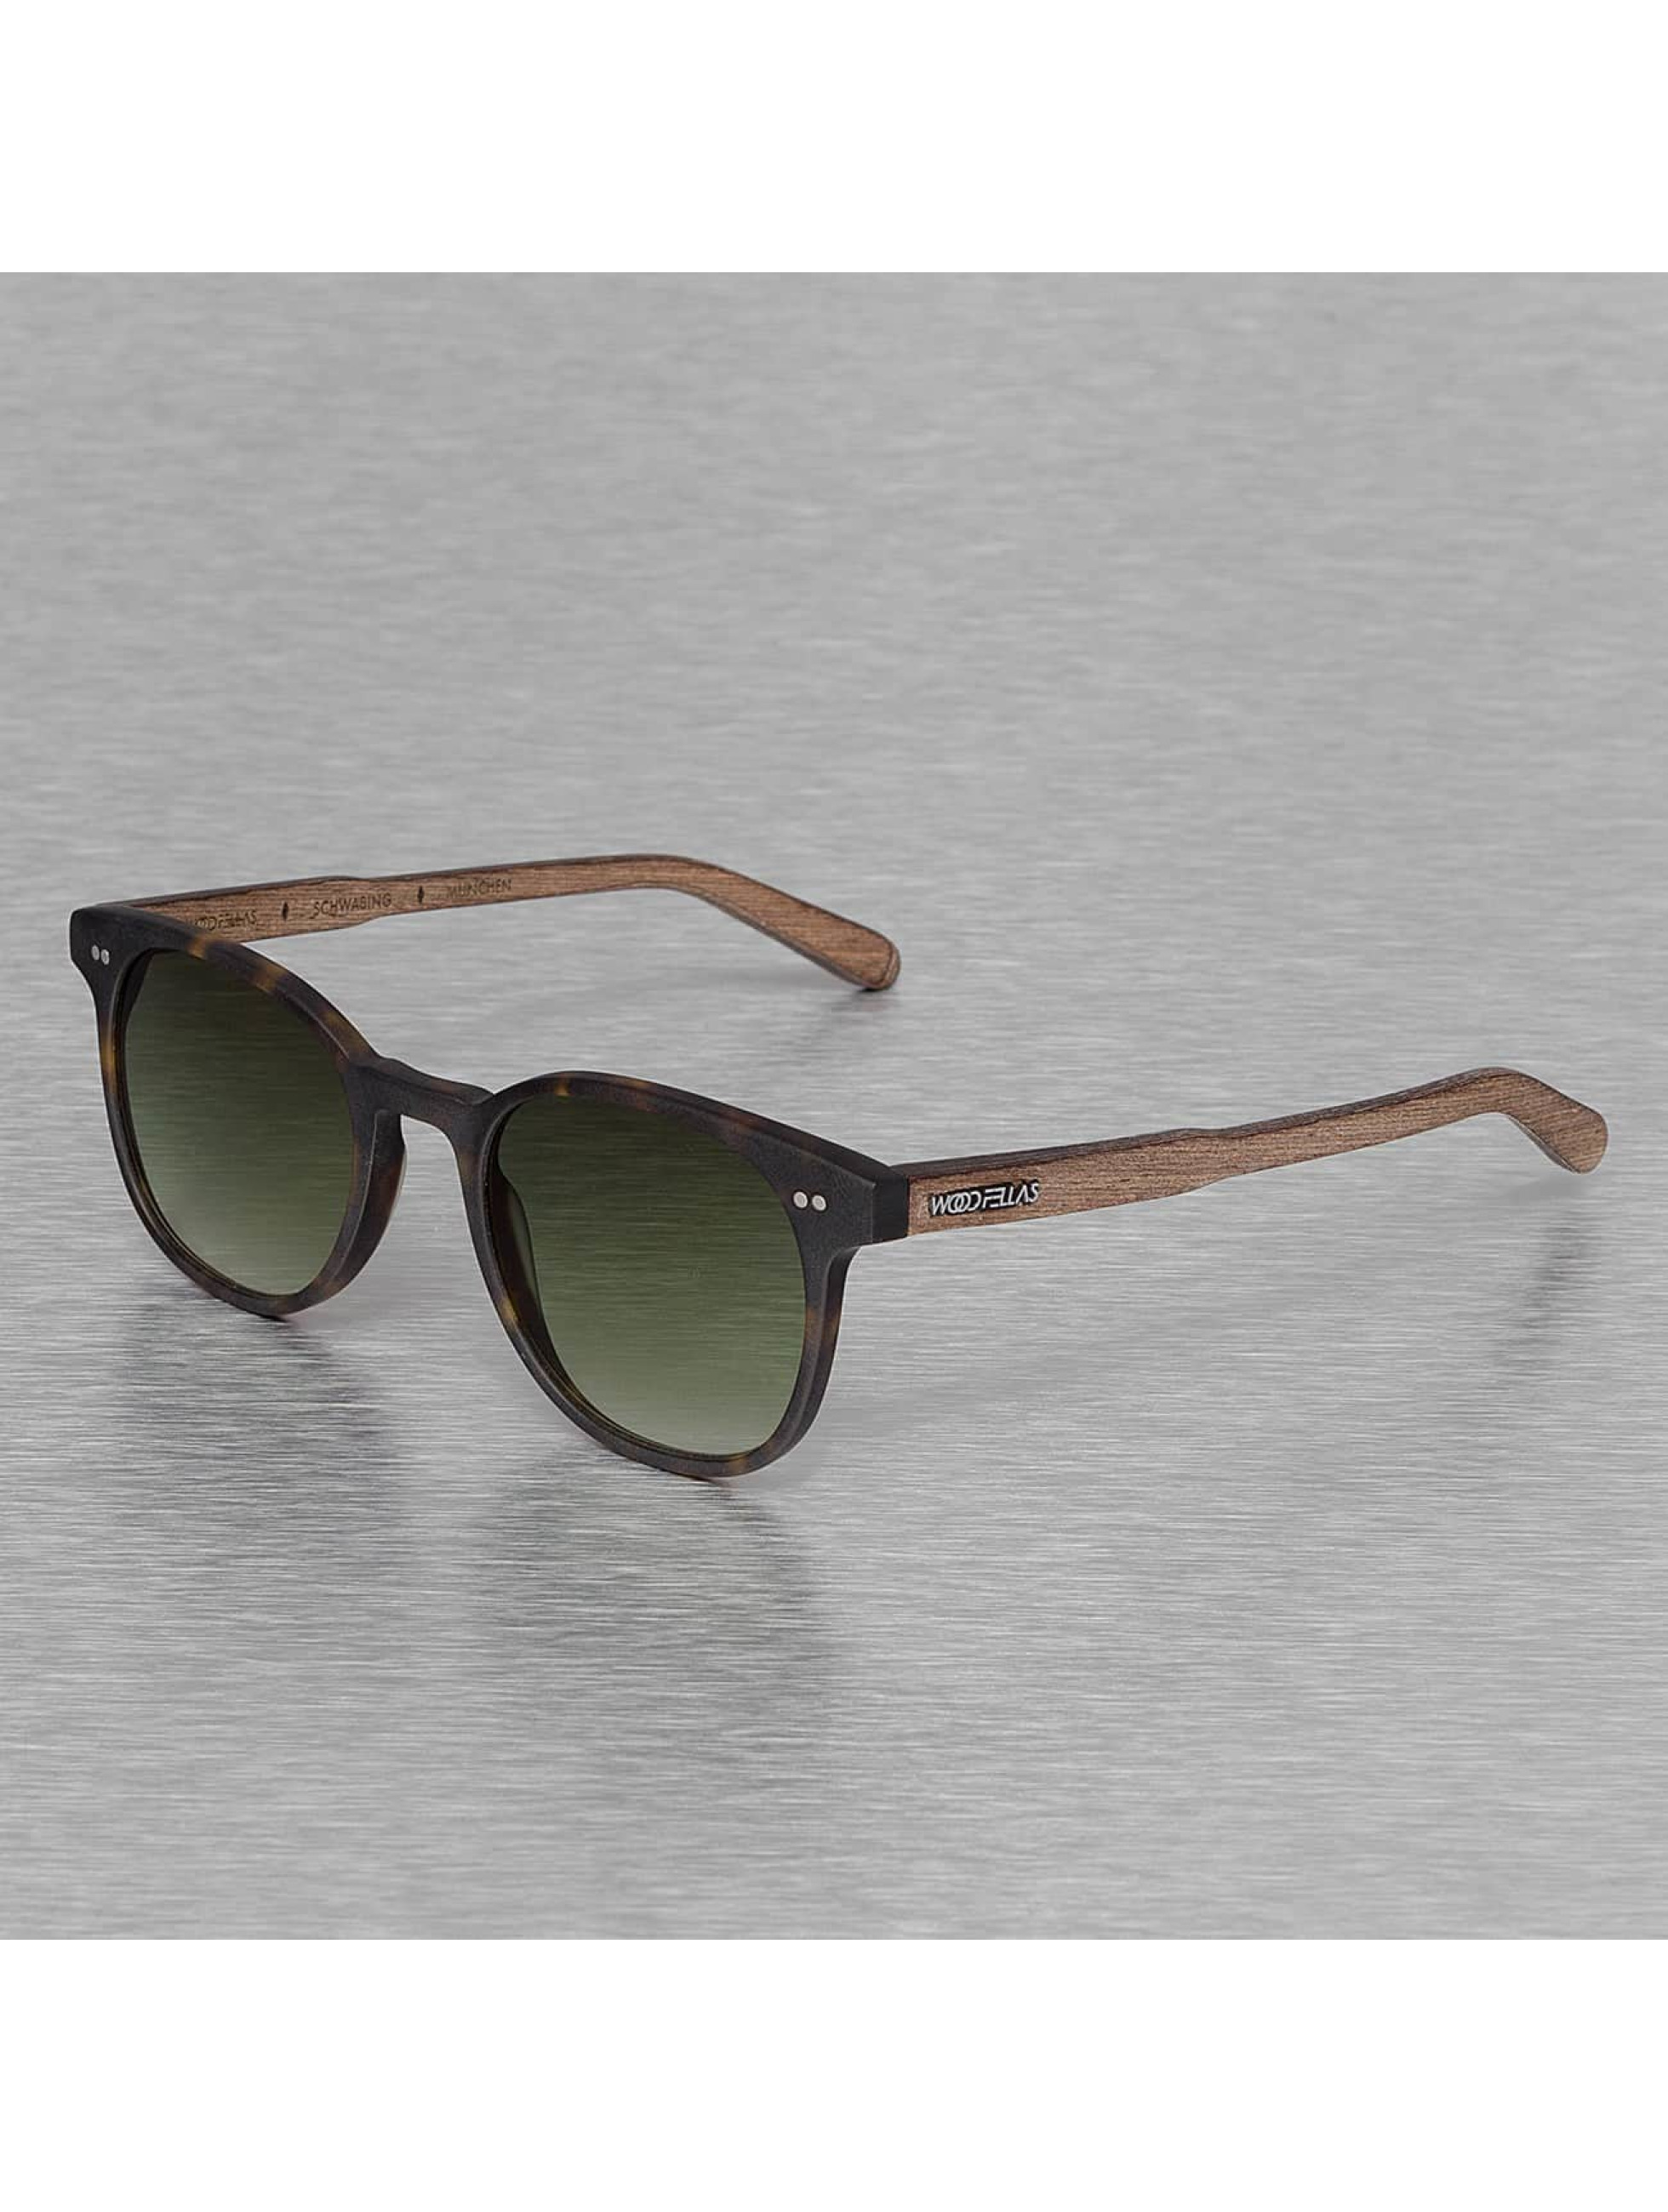 Wood Fellas Eyewear Sonnenbrille Eyewear Schwabing Polarized Mirror braun